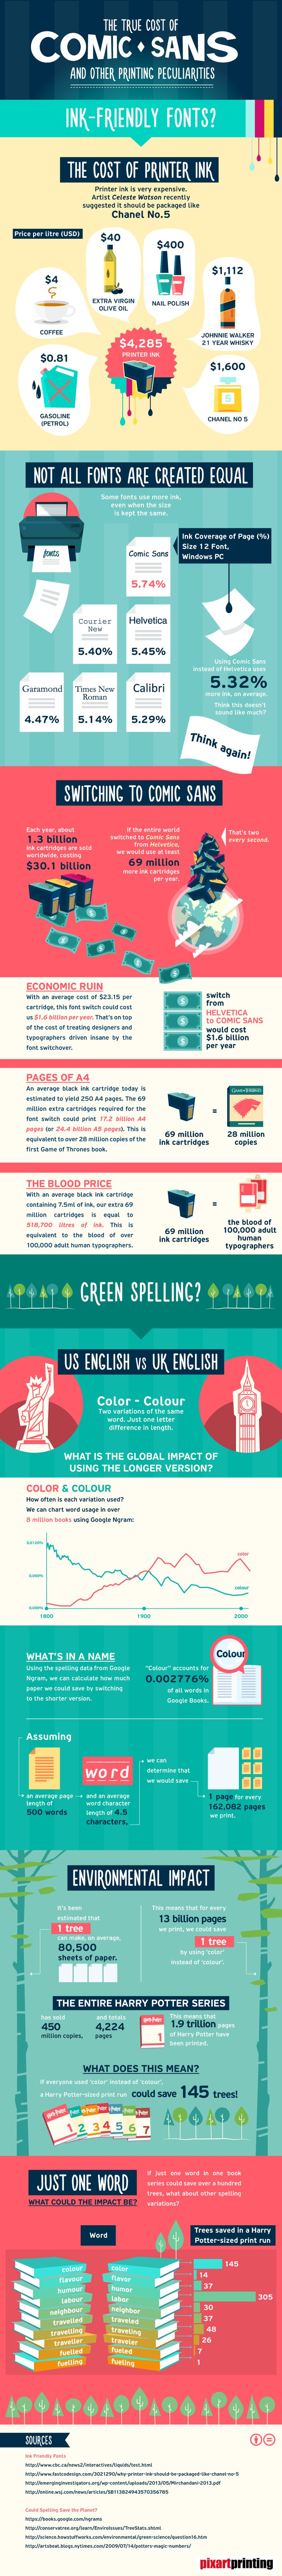 Unique Infographic Design, The True Cost of Comic Sans via @calinap #Infographic #Design #ComicSans